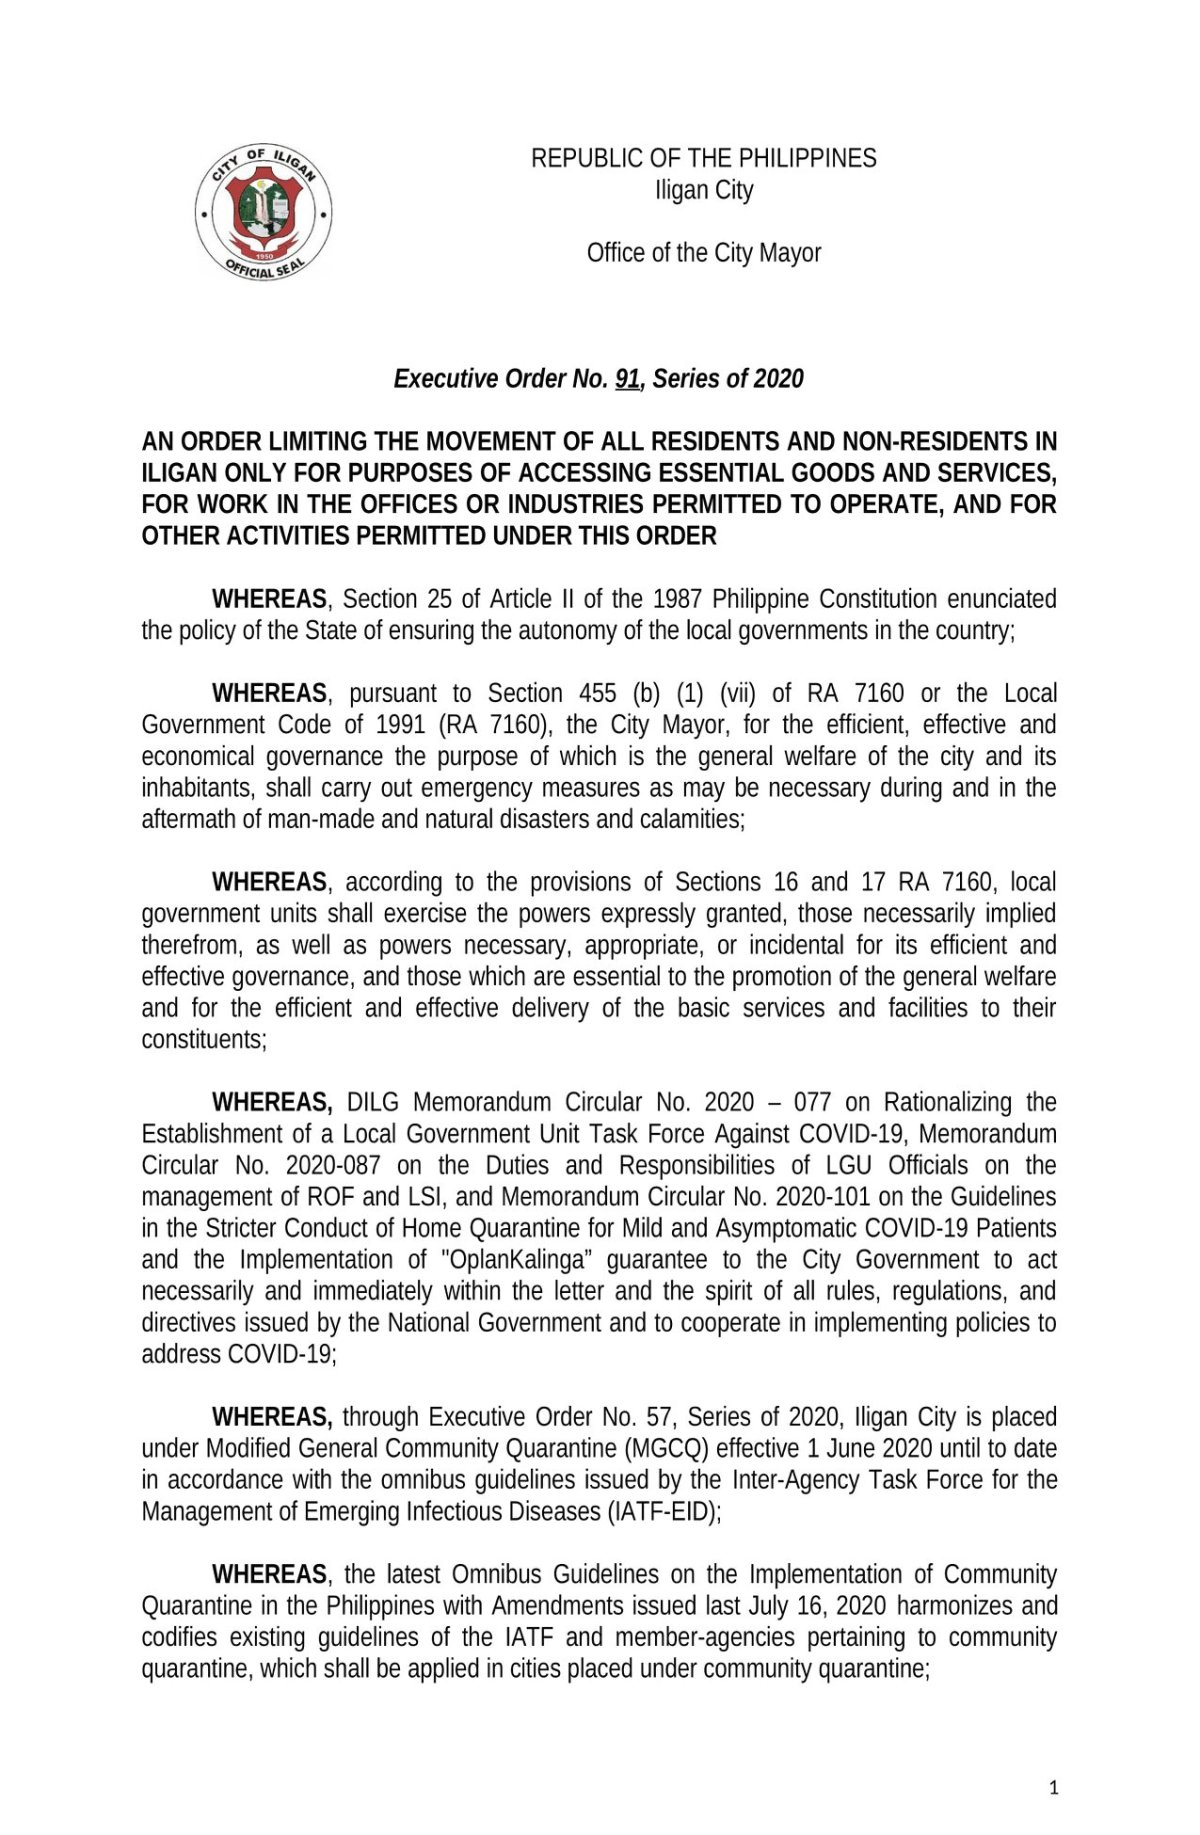 EXECUTIVE ORDER #91, SERIES OF 2020 1